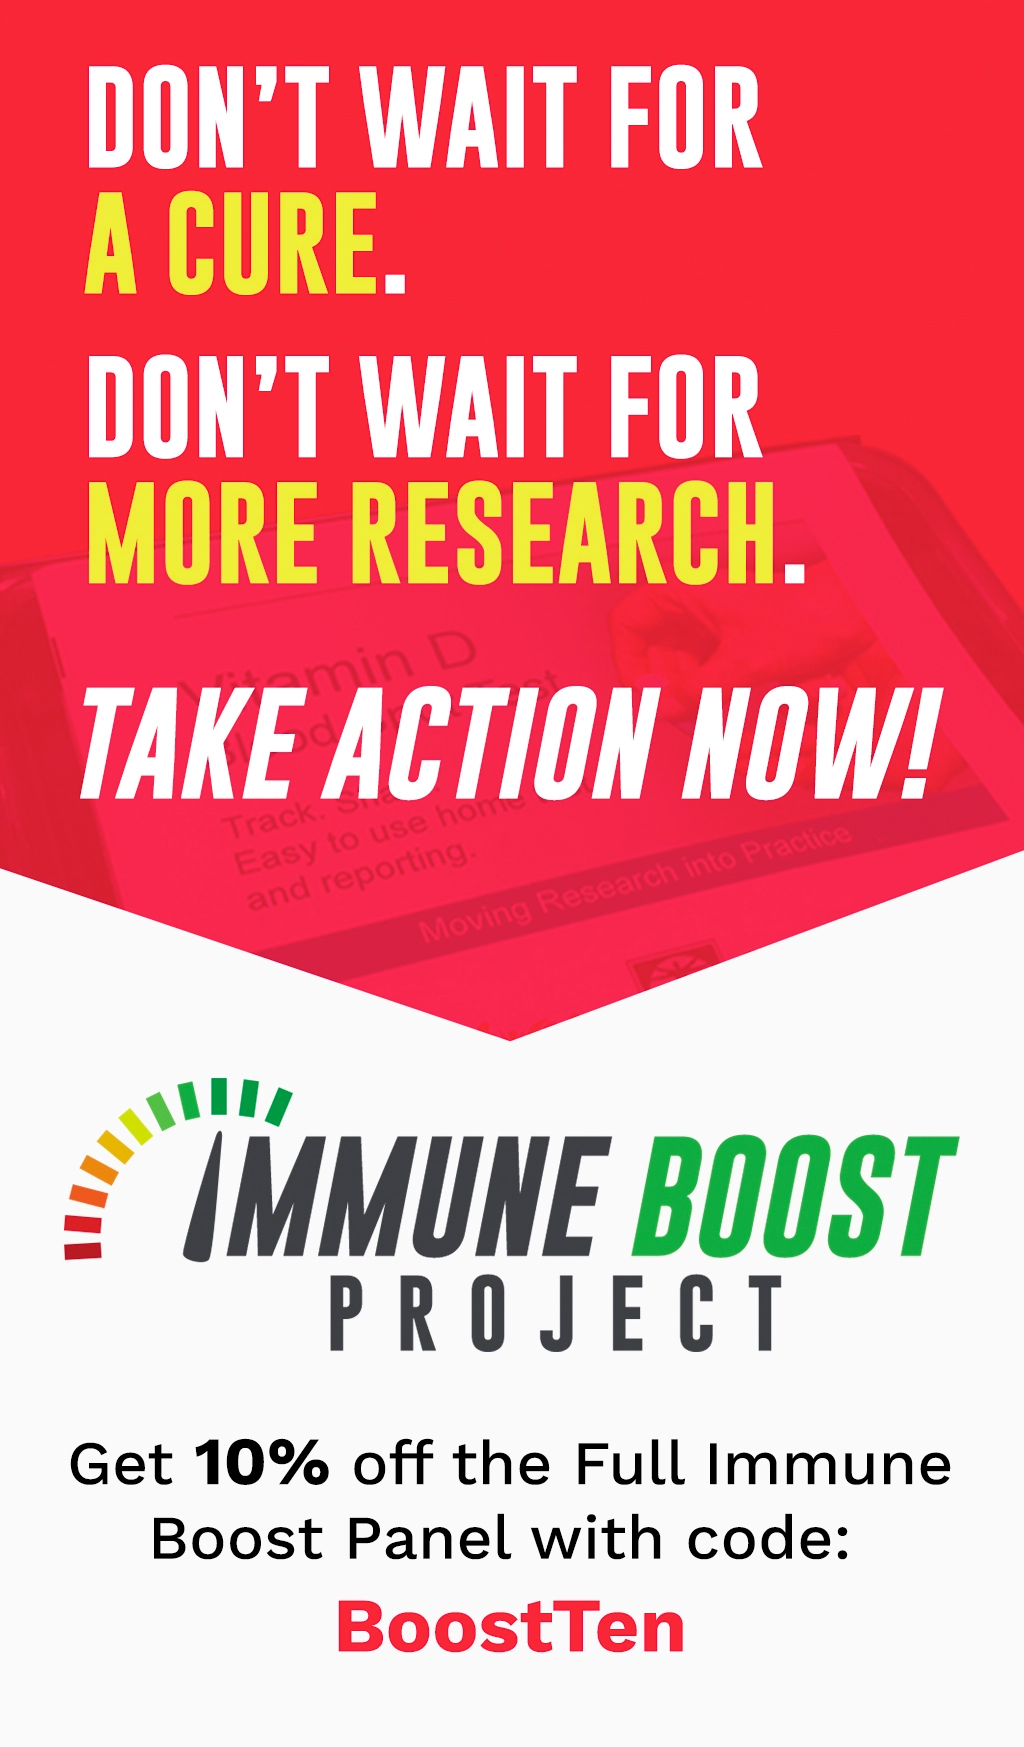 Get 10% off the Full Immune Boost Panel with code: BoostTen